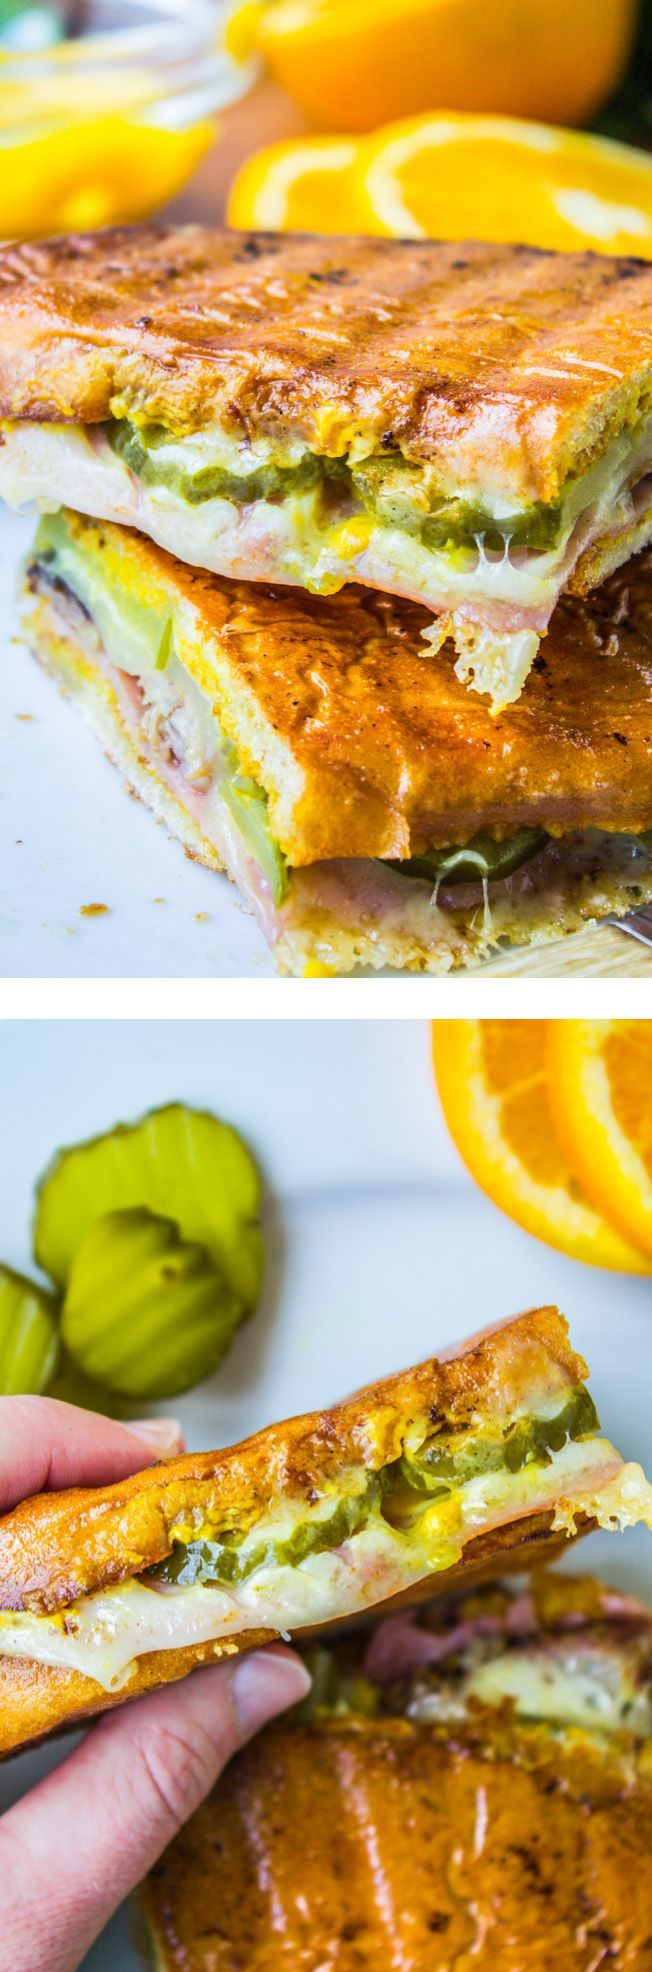 Cuban Sandwiches (Cubanos) #cuban #sandwich #recipe